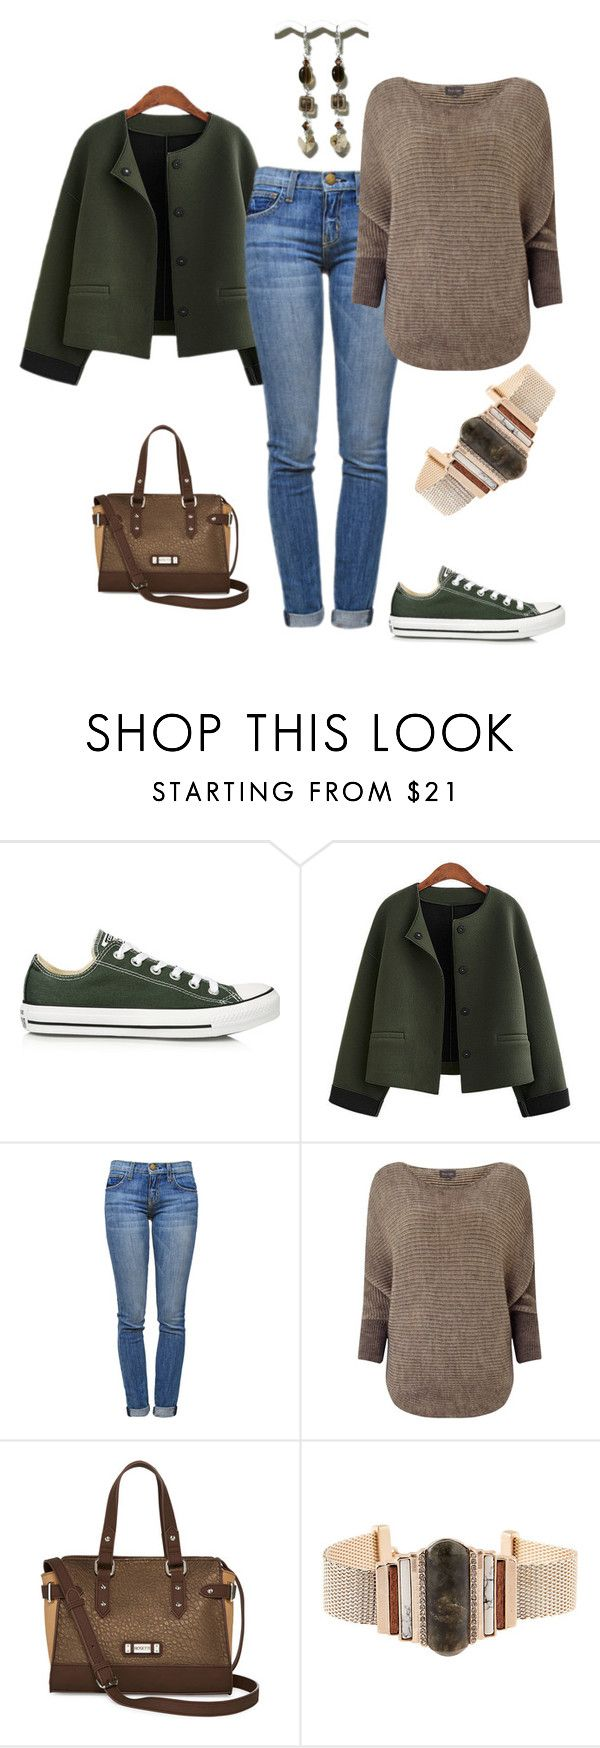 """Weekend Look Feb. 27th & Feb. 28th #1"" by antiadamo on Polyvore featuring Converse, Current/Elliott, Phase Eight and Rosetti"